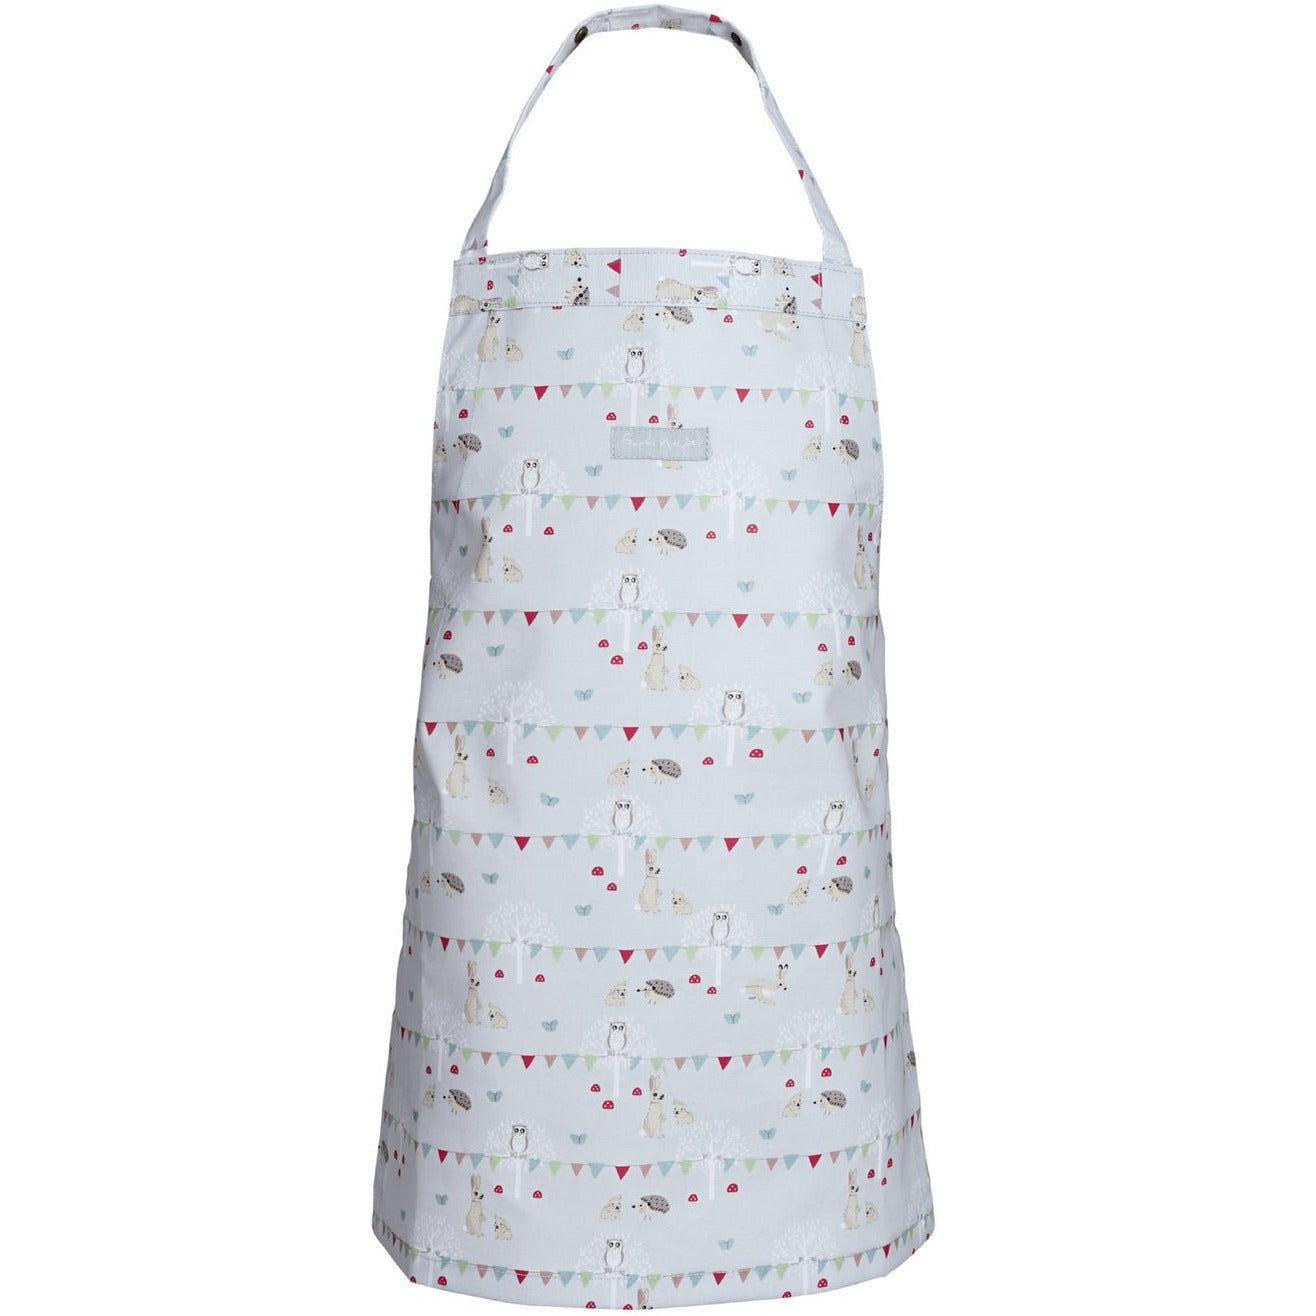 Childs Apron Pattern Best Ideas